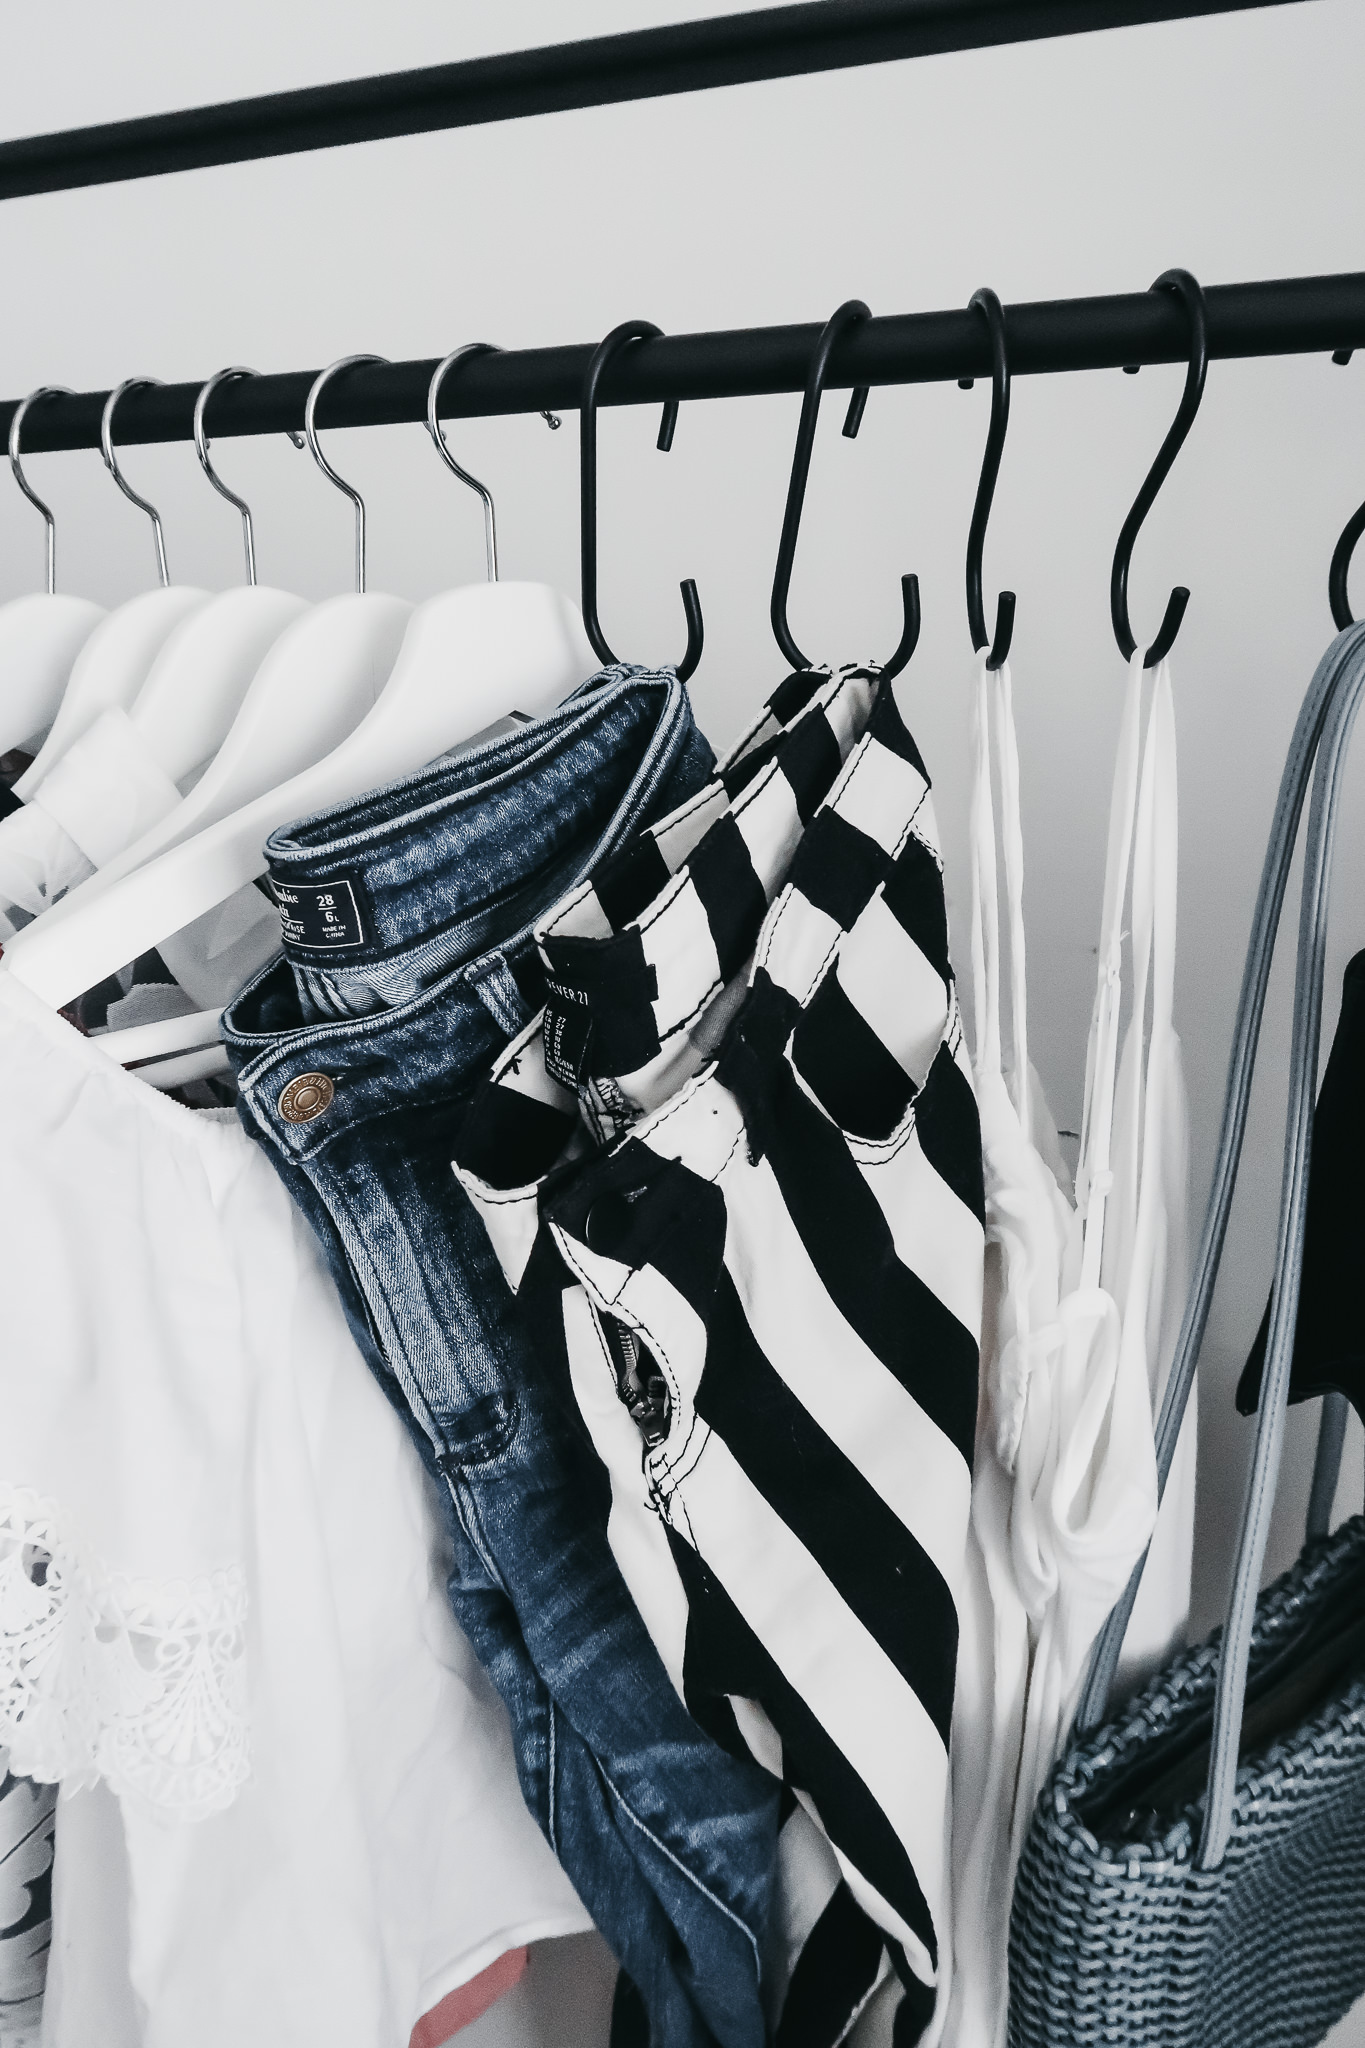 5 Reasons We Are Loving Garment Racks 2